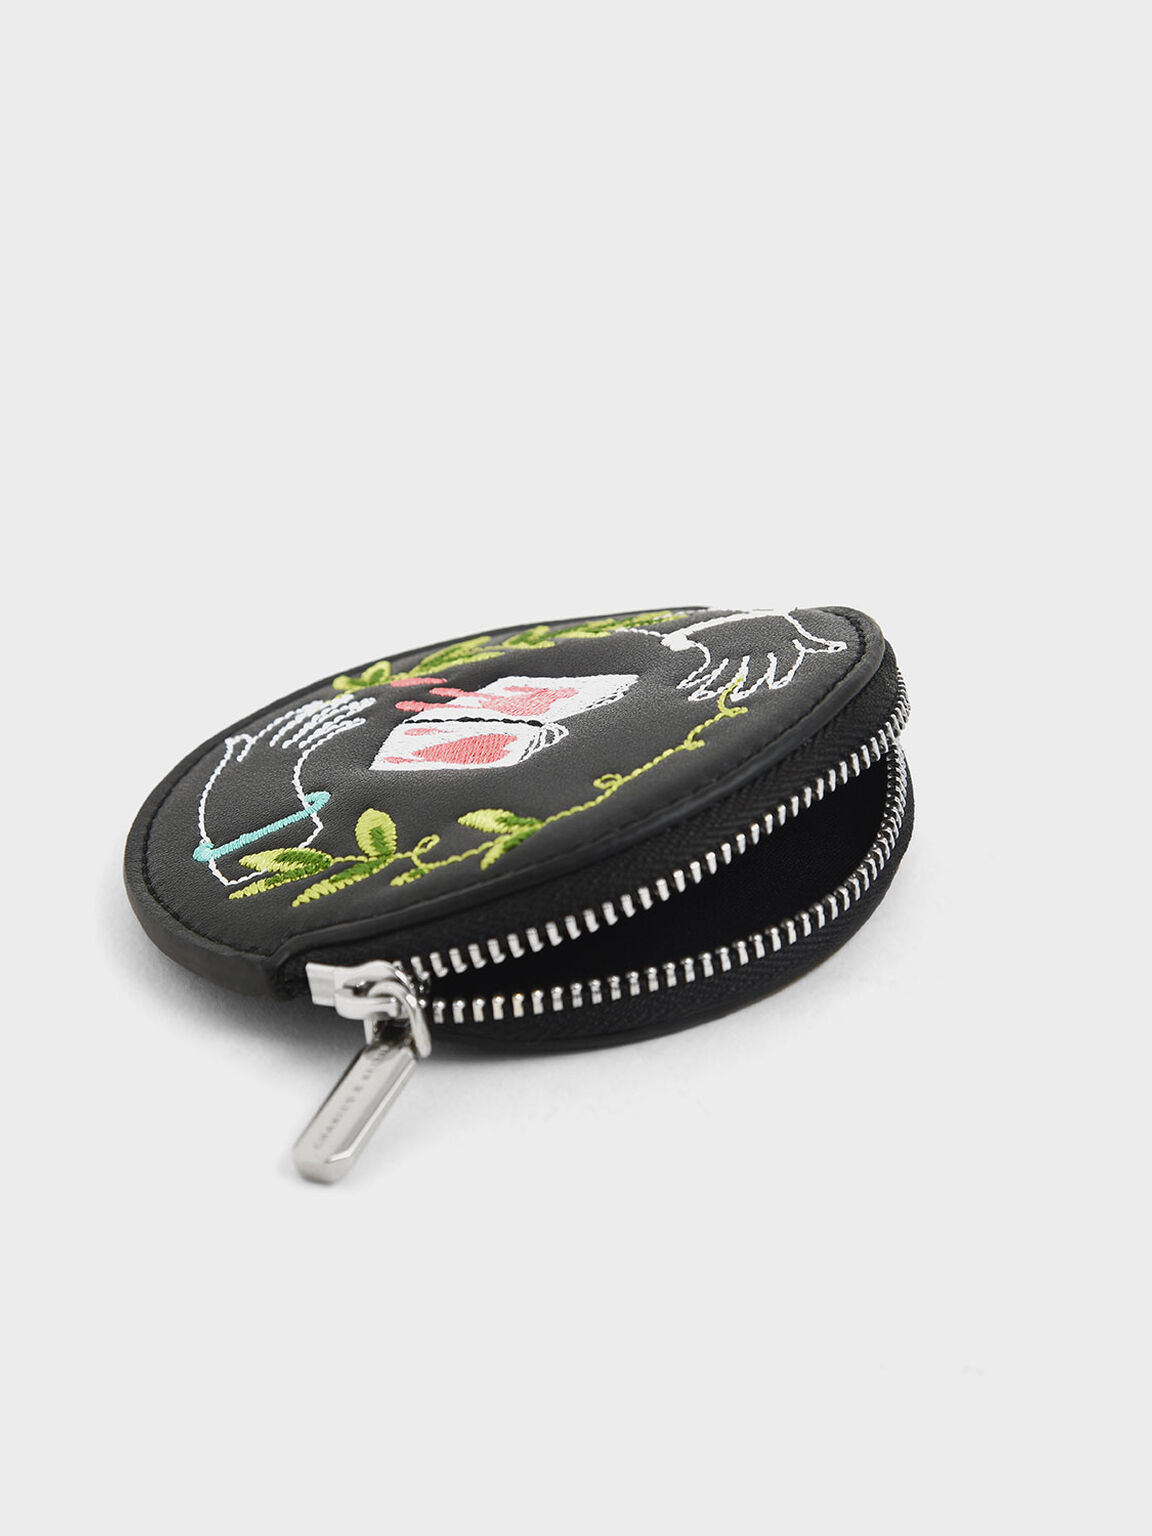 CHARLES & KEITH By Teeteeheehee: Embroidered Round Pouch, Black, hi-res